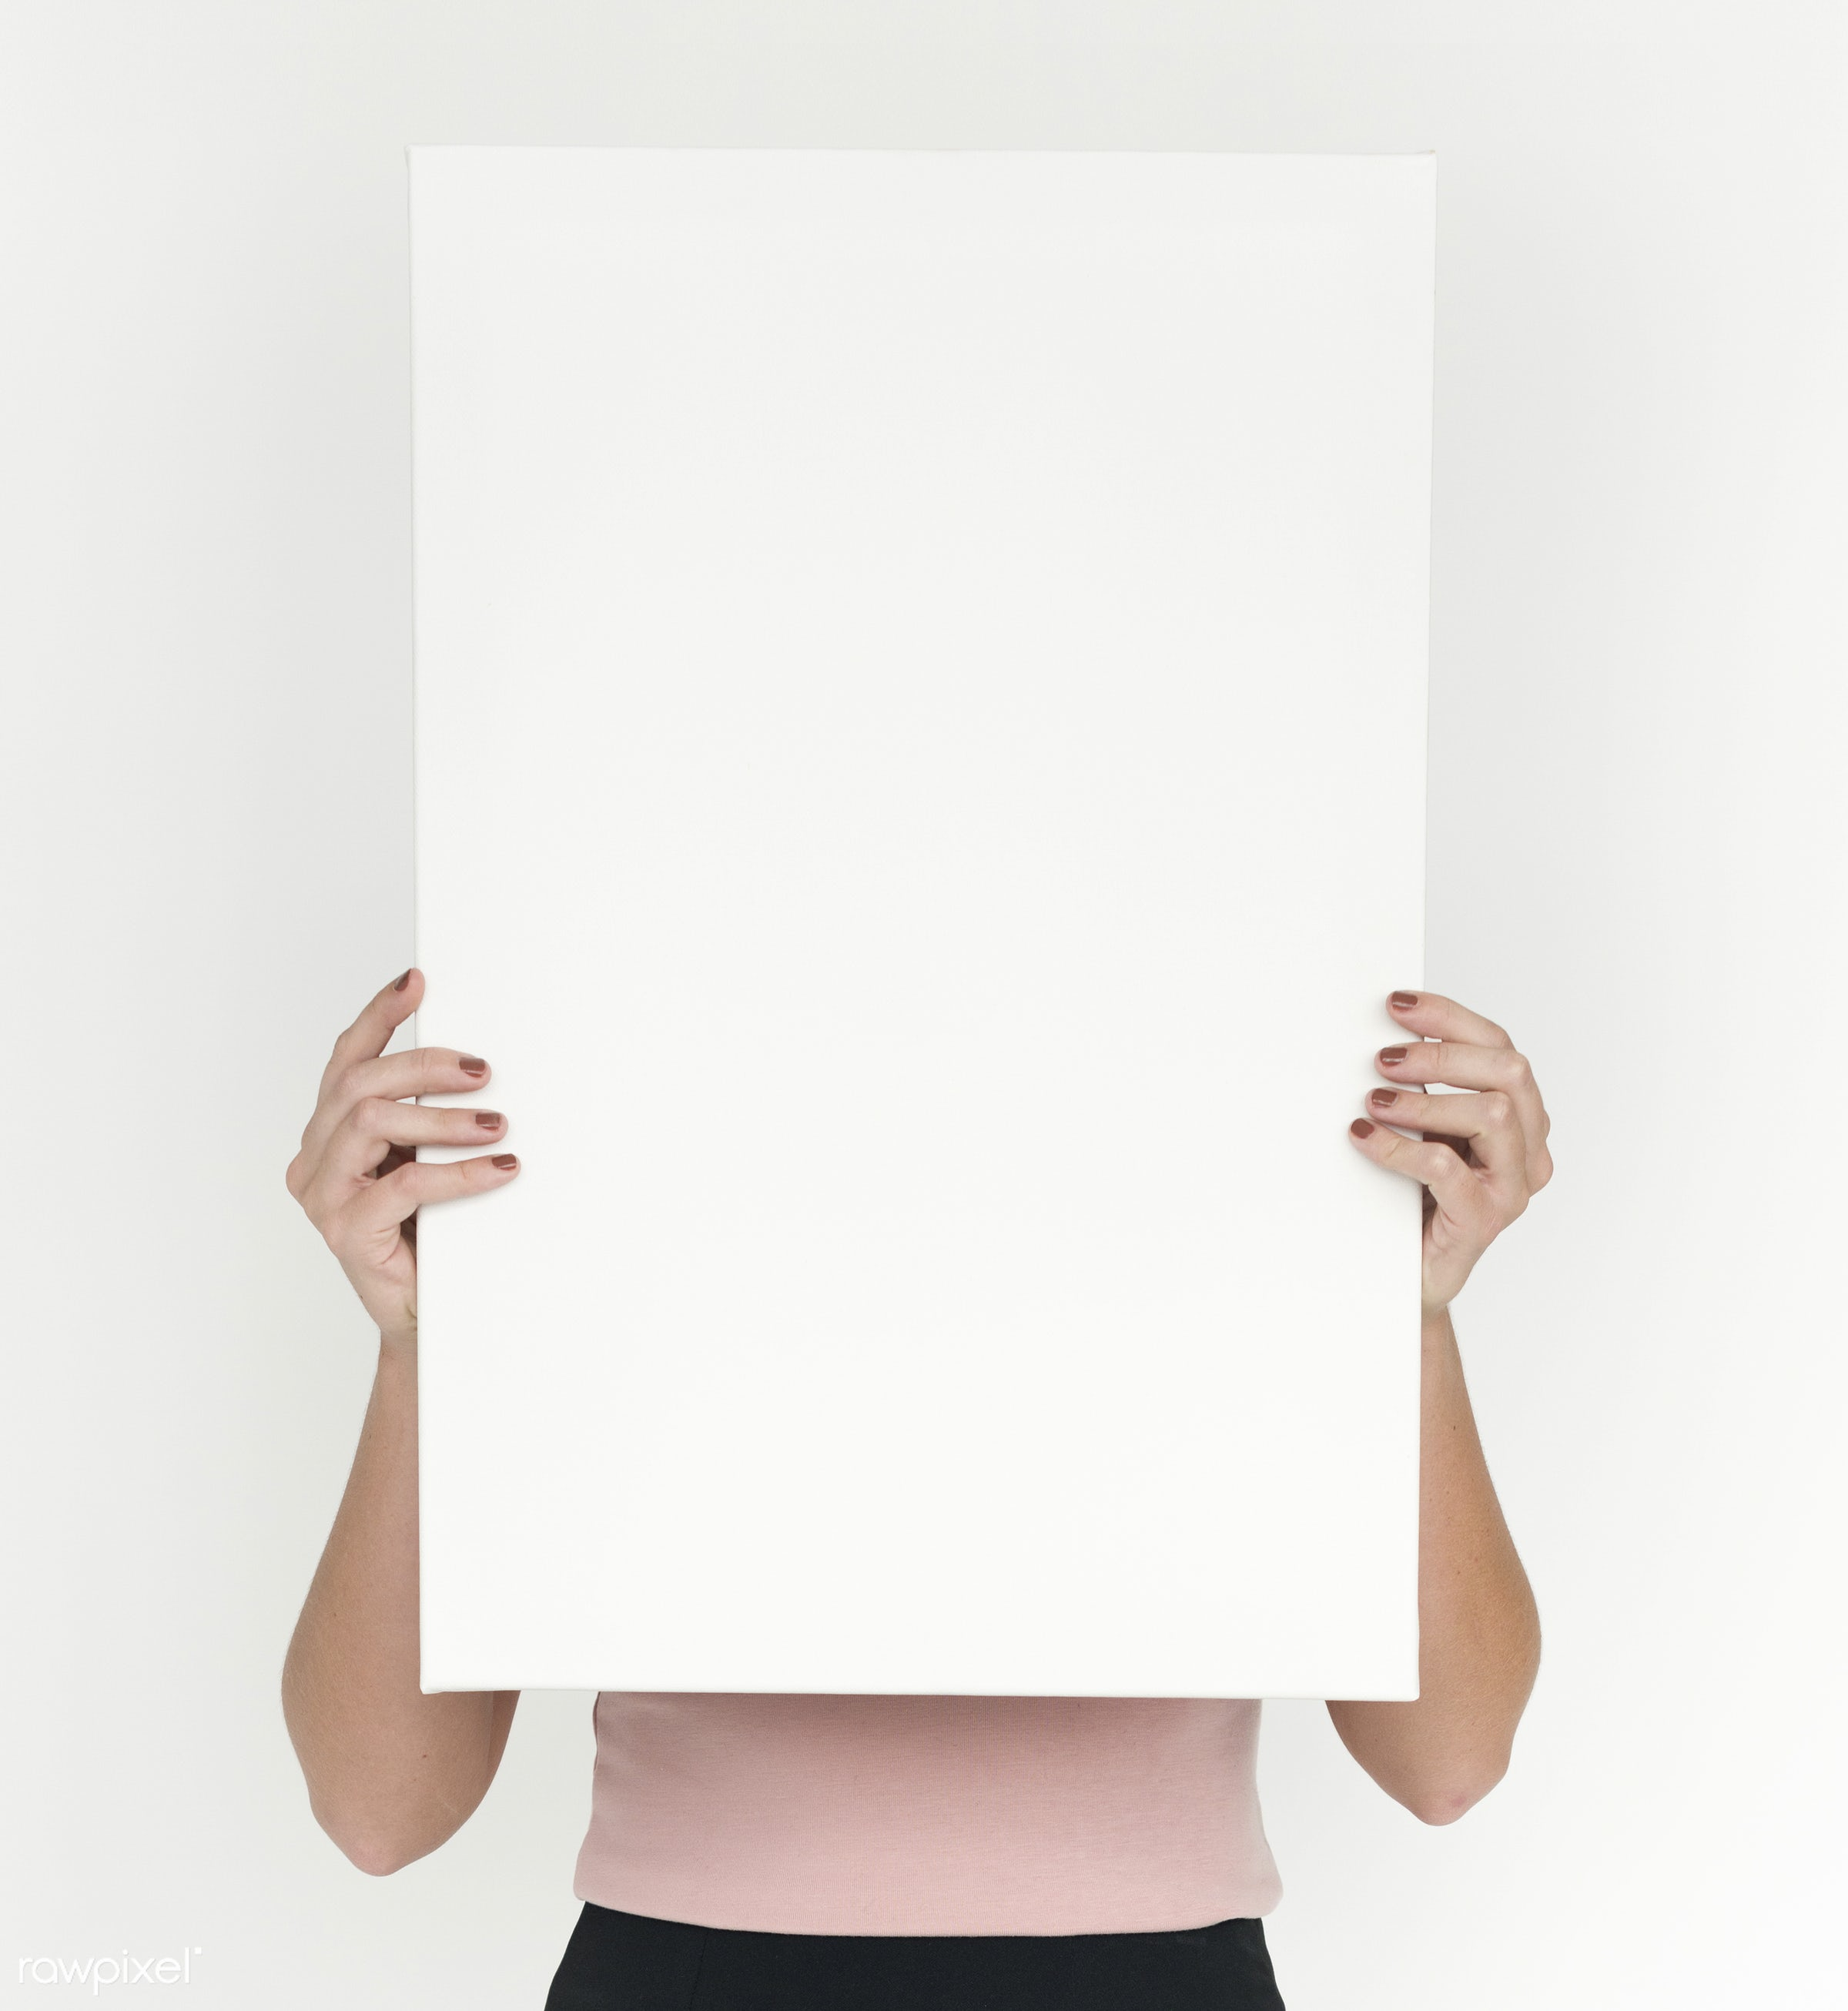 studio, person, copy space, holding, isolated on white, cute, pretty, people, placard, girl, woman, casual, banner, isolated...